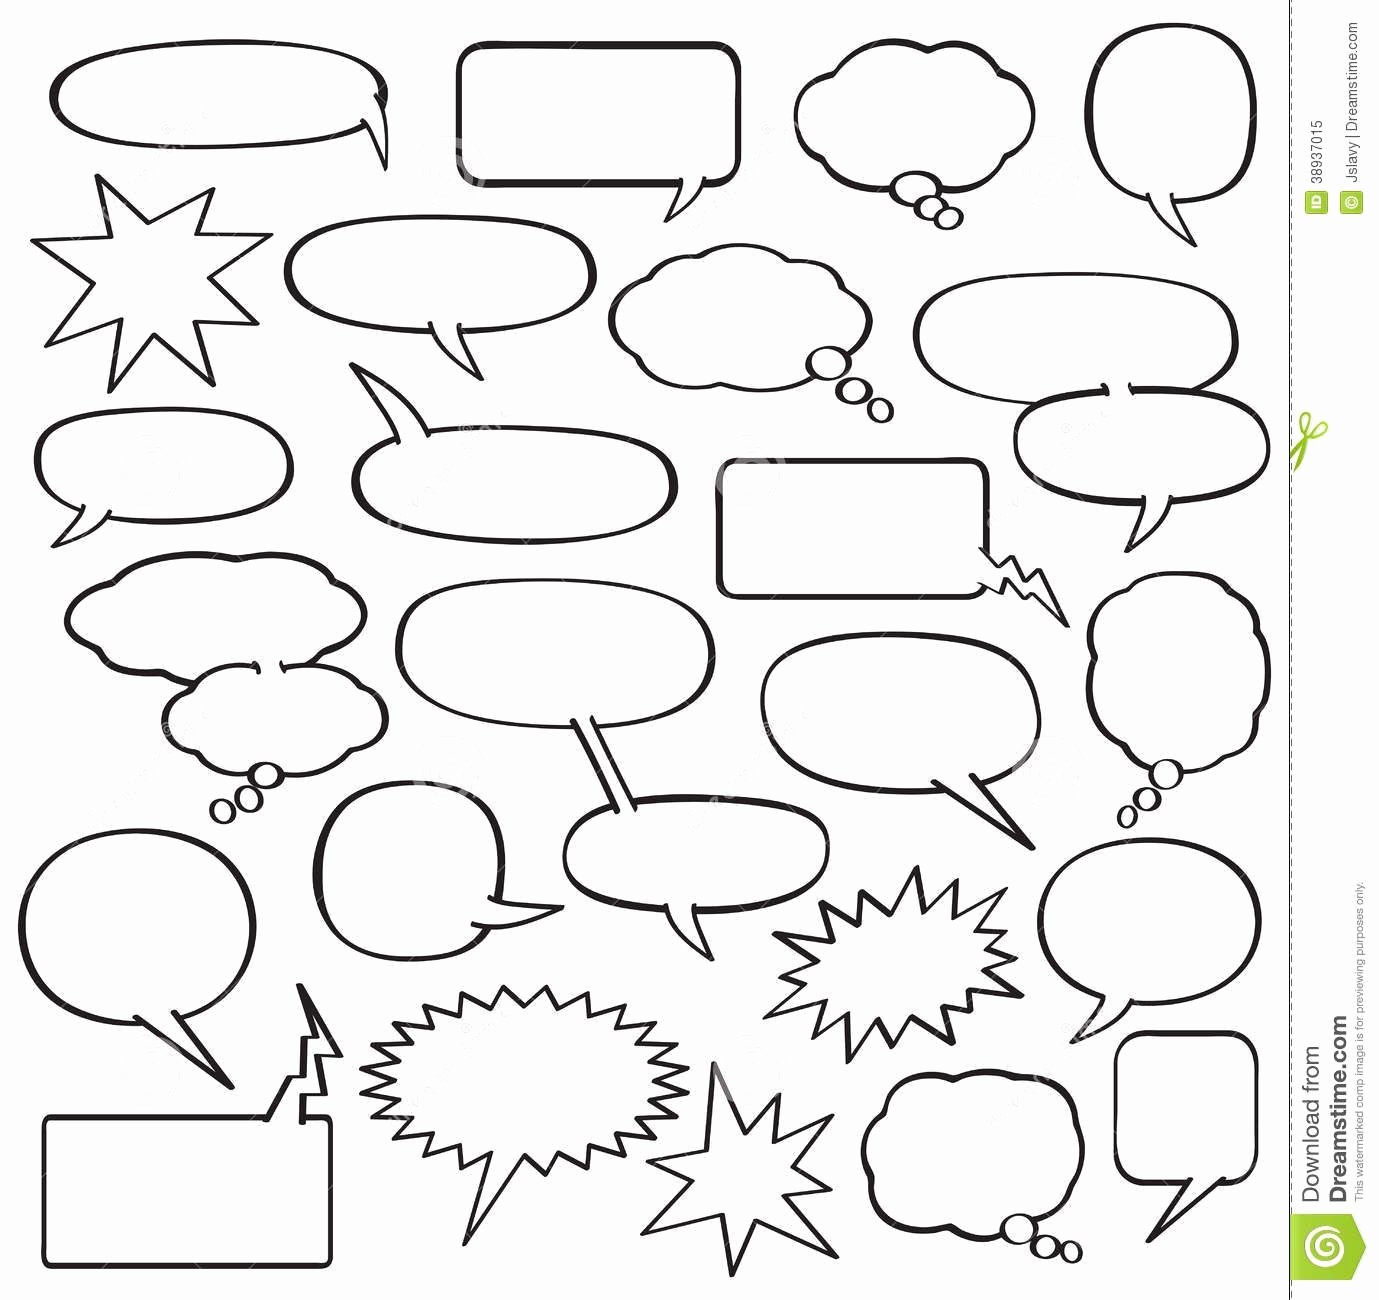 Comic Strip Template Word Best Of Blank Ic Strip Speech Bubbles Template School